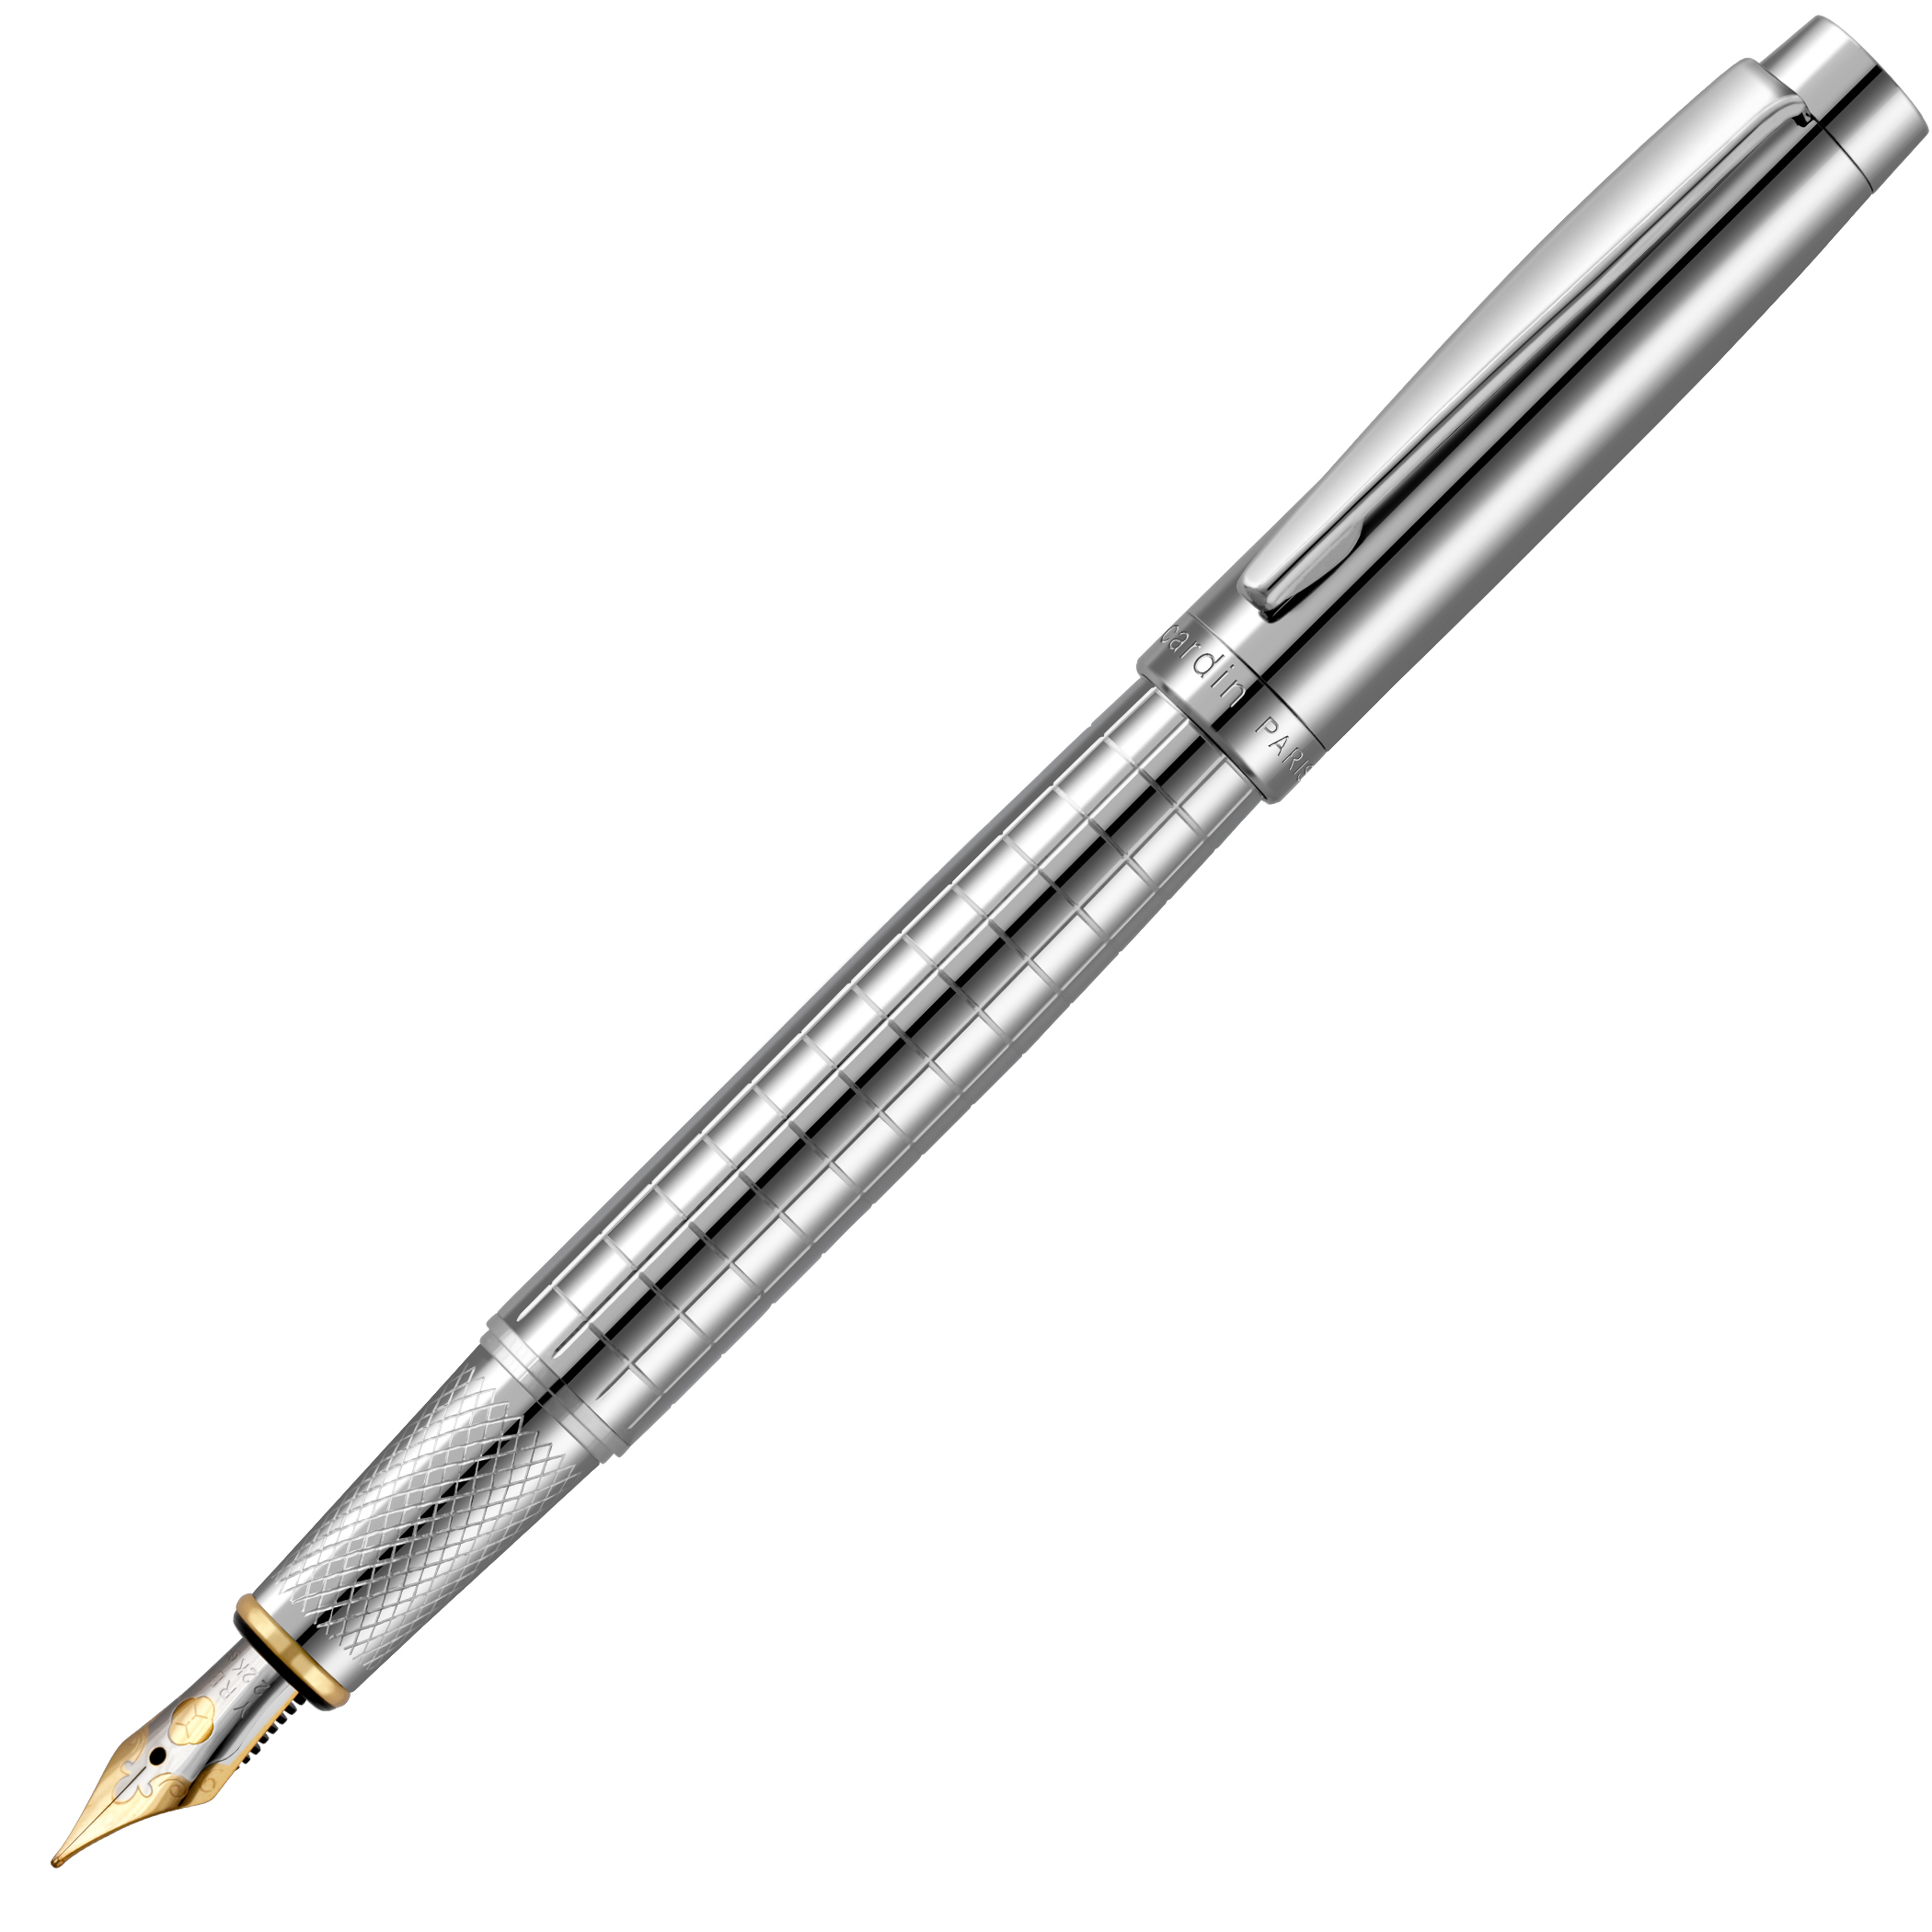 Pierre Cardin Tournier Fountain Pen Ballpoint Pen